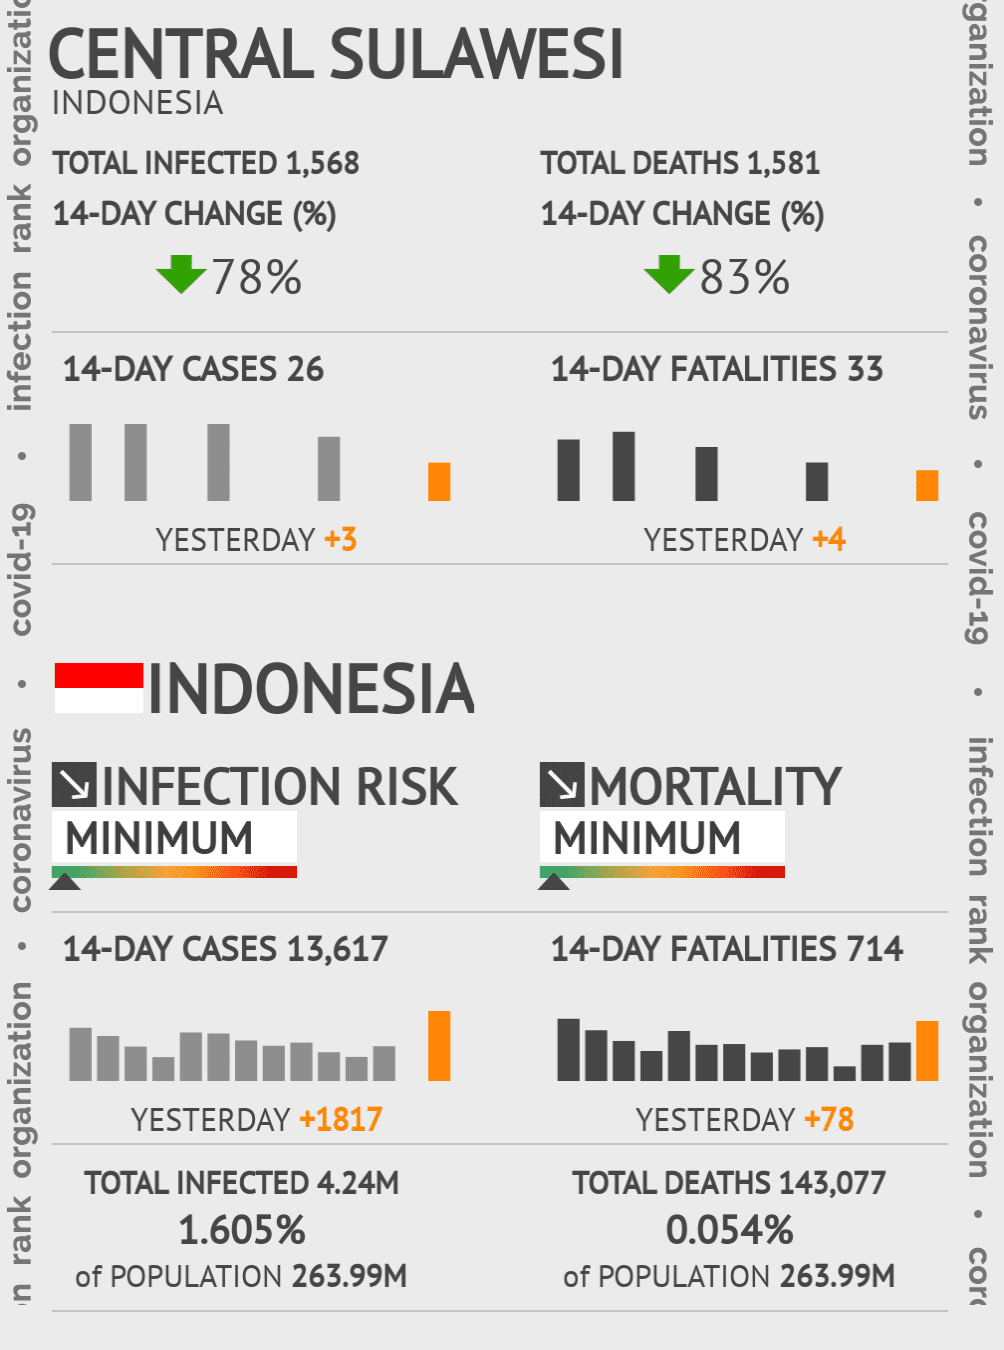 Central Sulawesi Coronavirus Covid-19 Risk of Infection on March 07, 2021